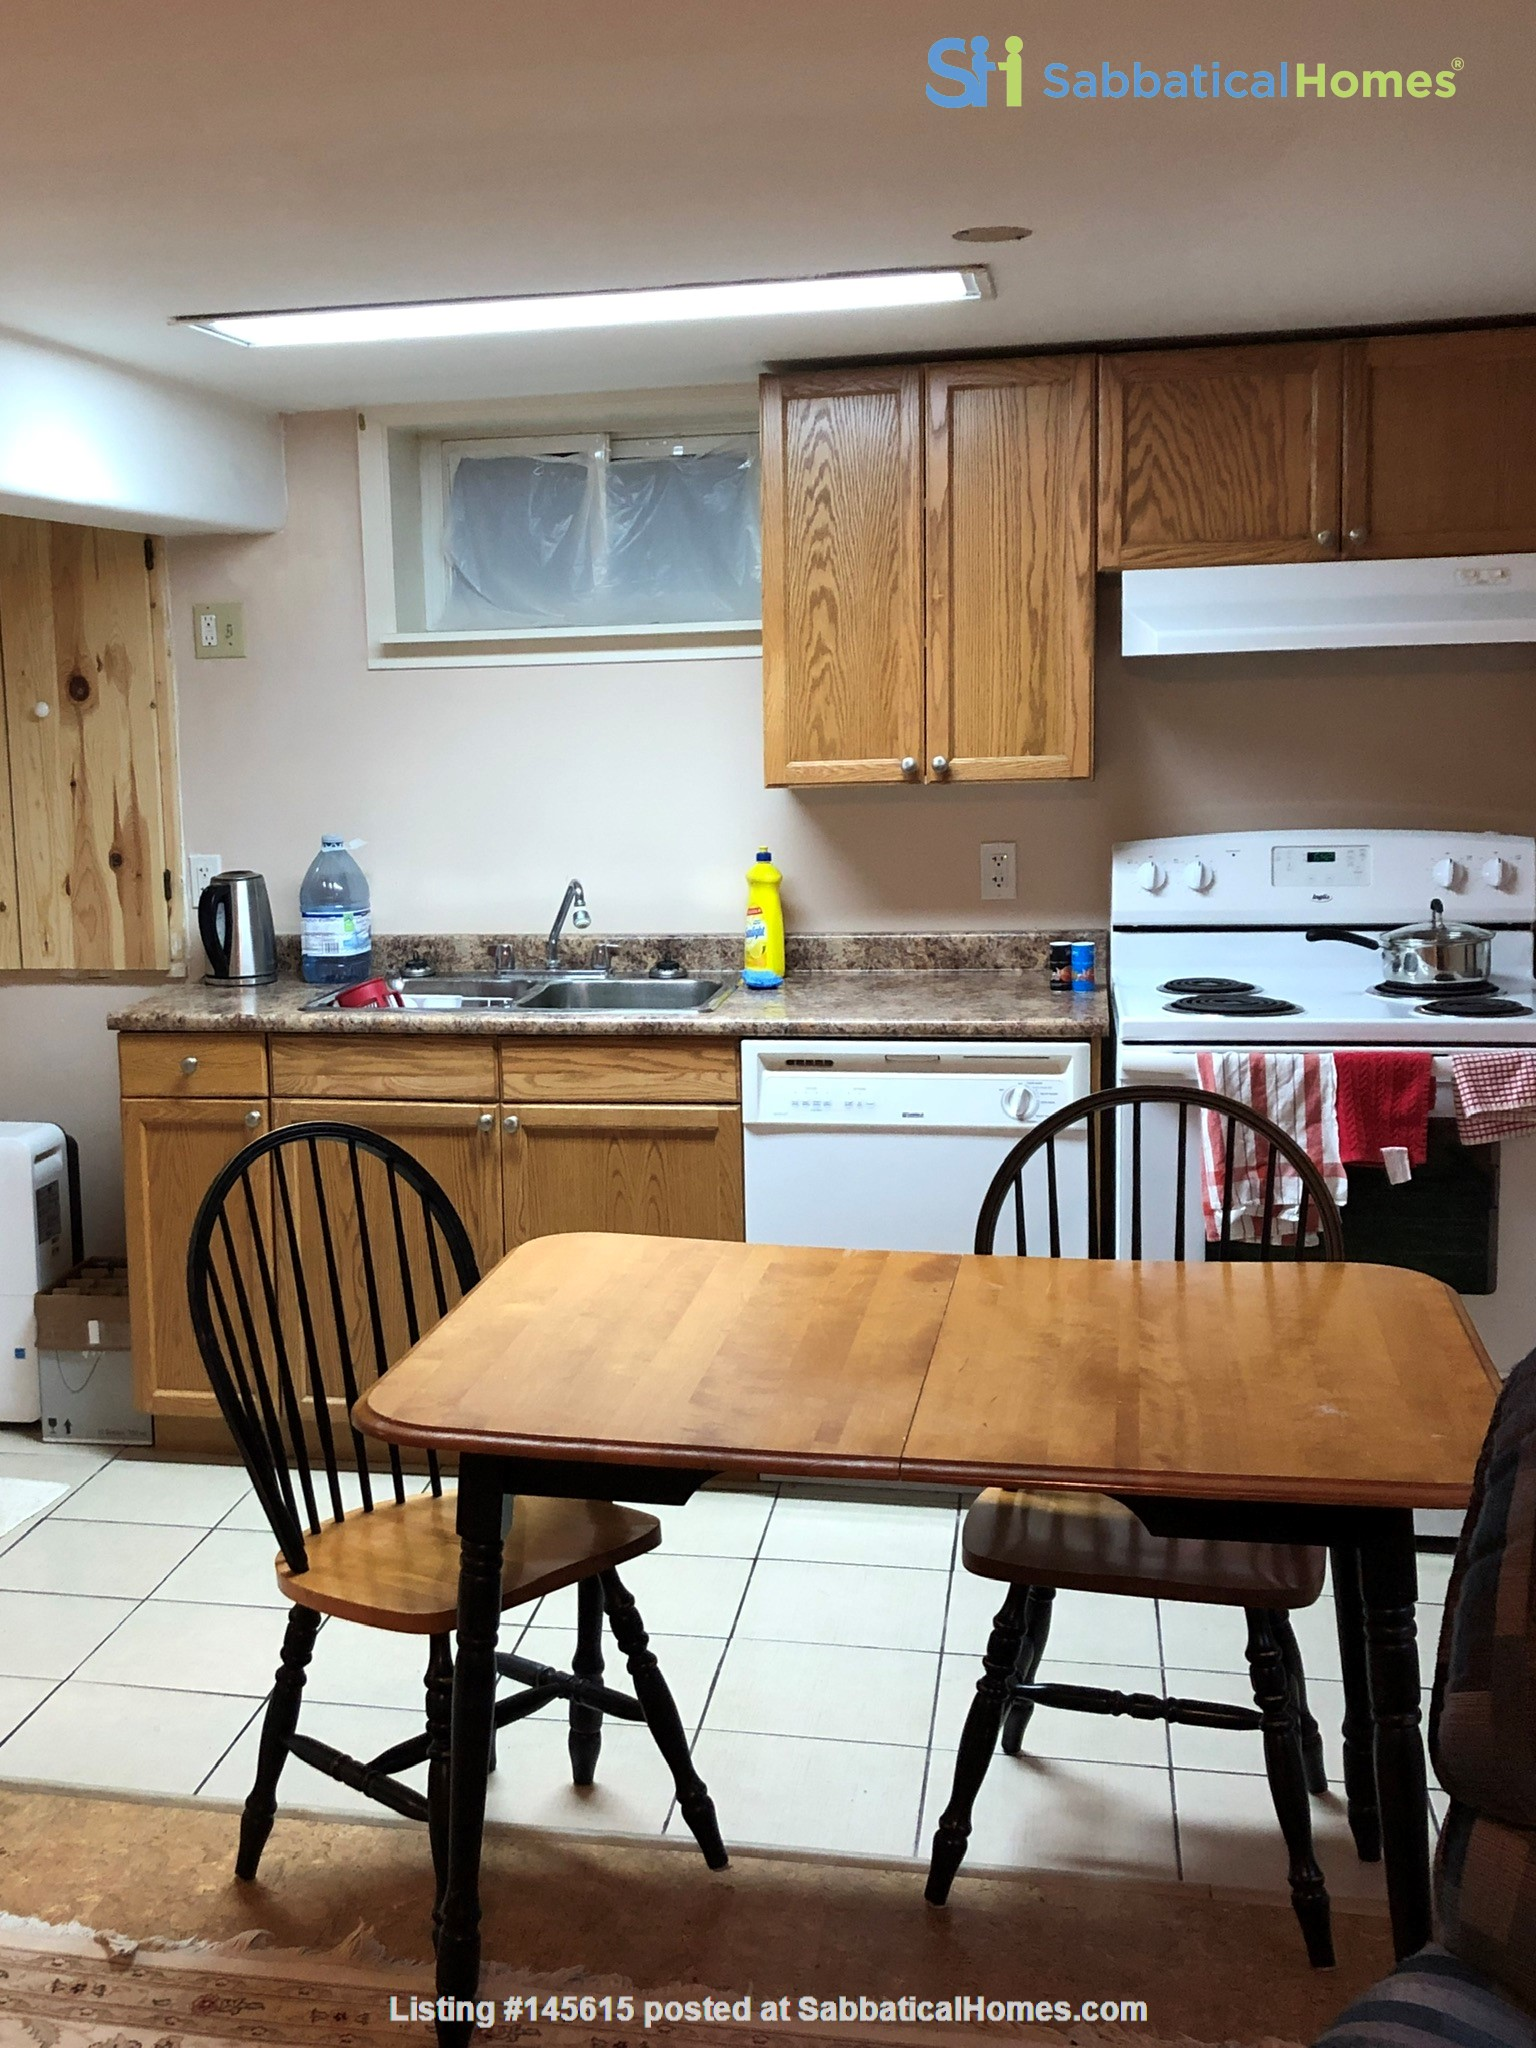 Apartment in quiet bungalow, 10 minutes walk to U of Guelph campus. Home Rental in Guelph, Ontario, Canada 0